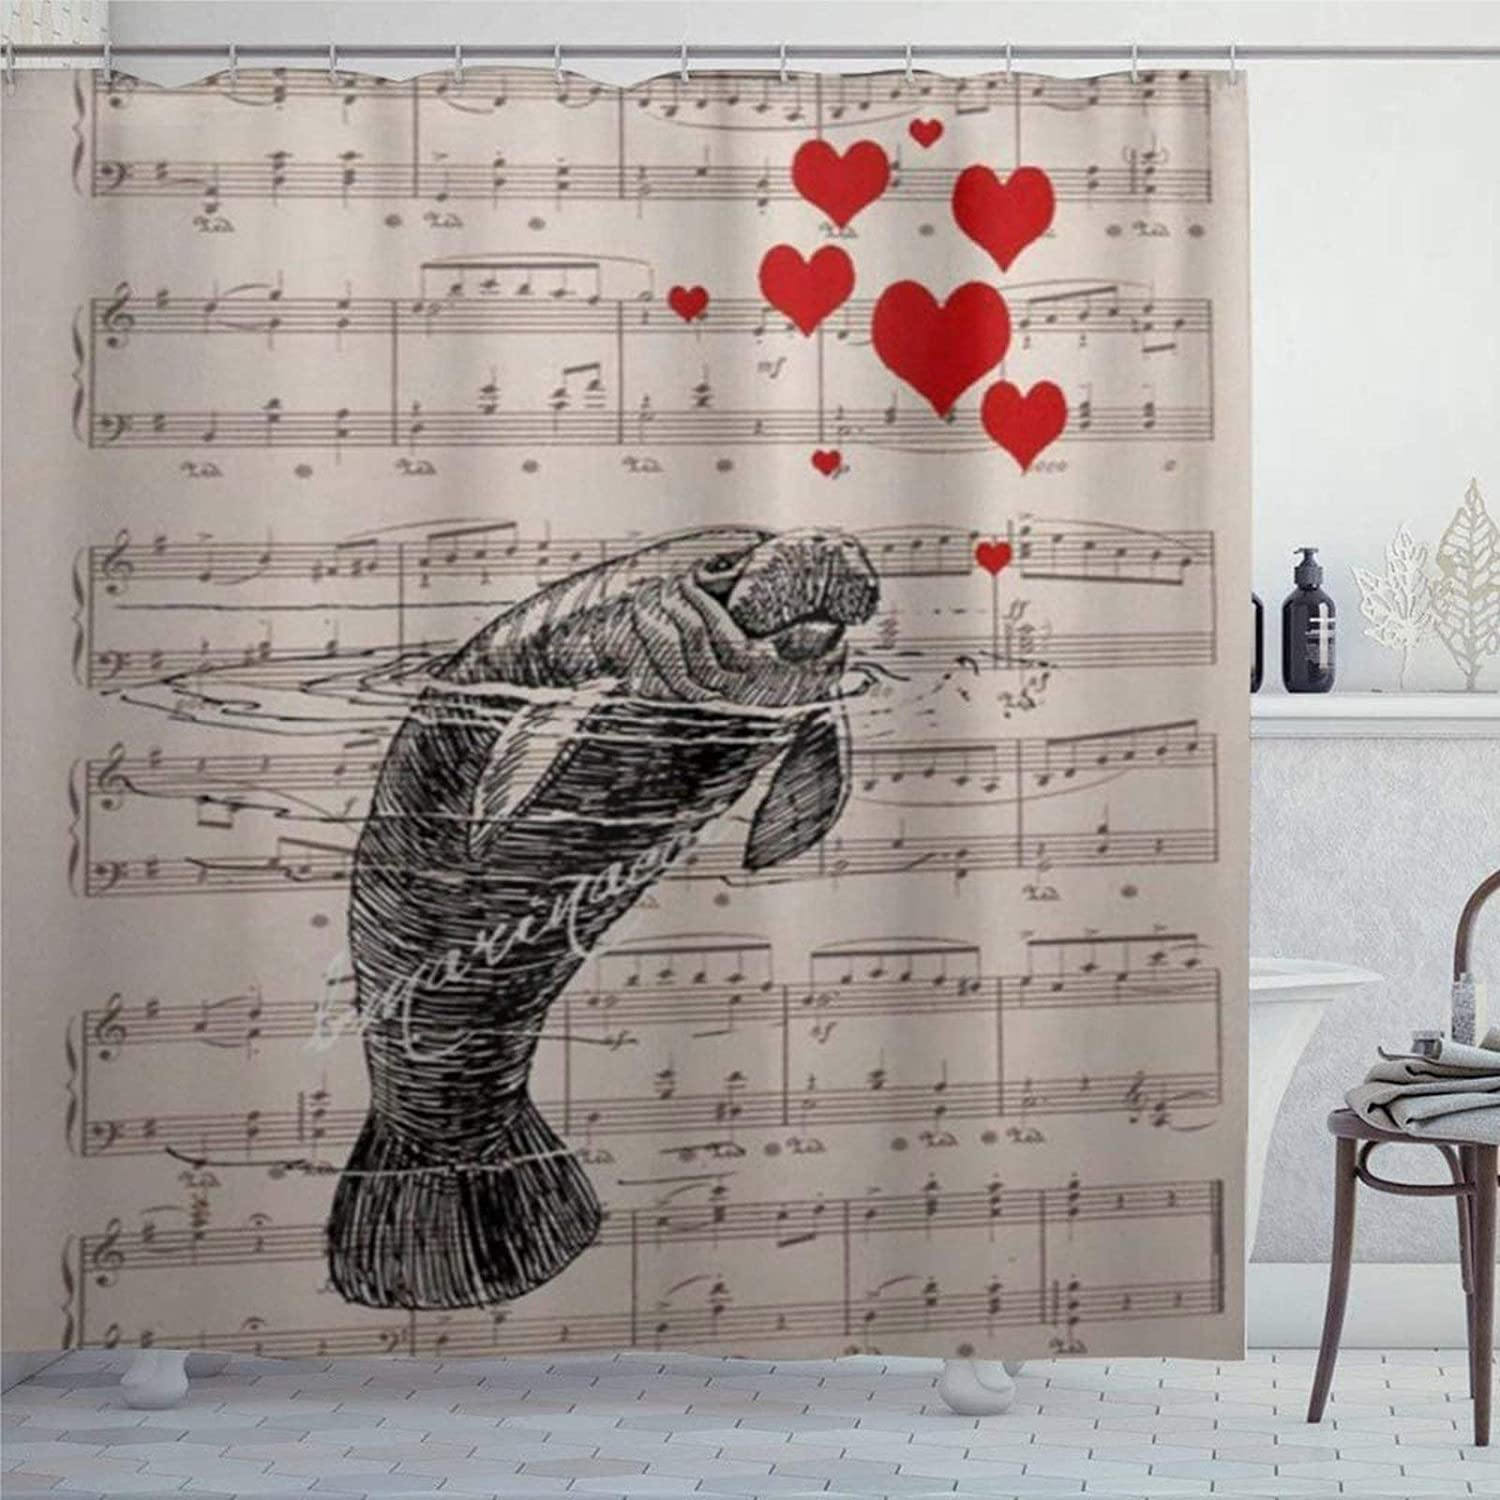 Manatee Red Hes Valentine Digital on Music Page Ing Personalized Bath Curtain, 72x72 Inch Shower Curtain,Bathroom Decor for Bathroom with 12 Hooks for Father's Day,Mother's Day.